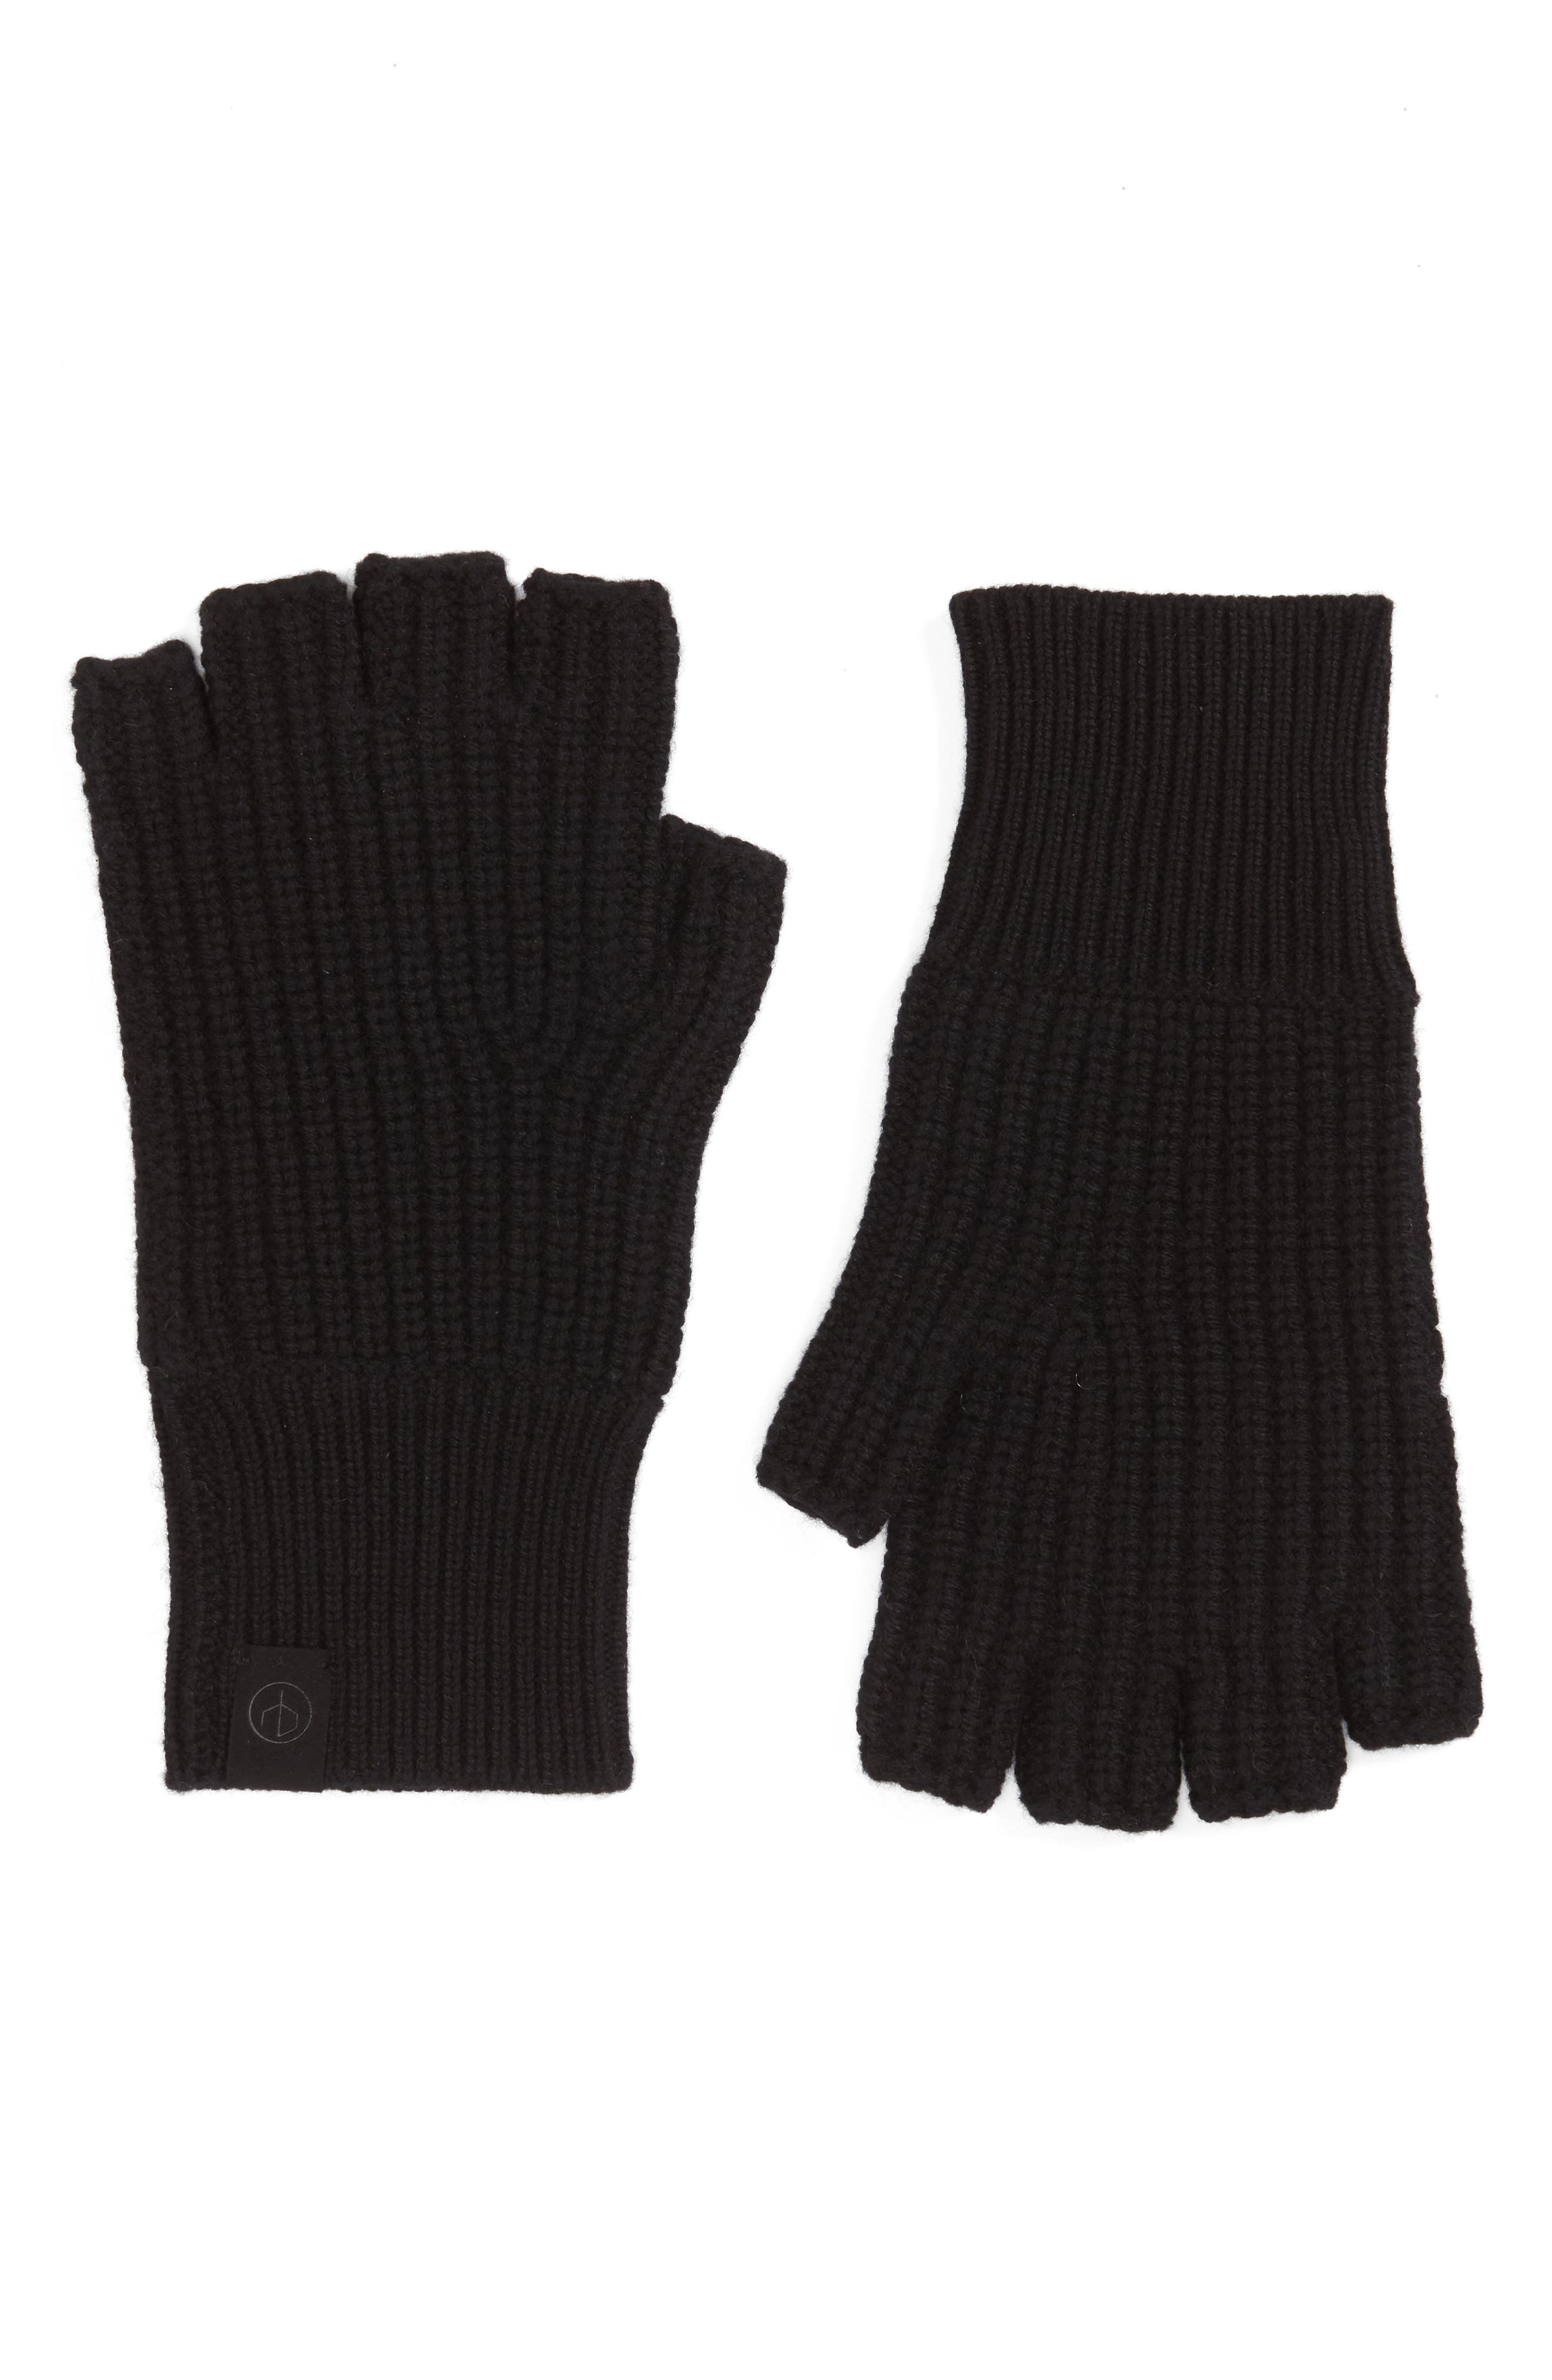 Ace Cashmere Knit Fingerless Gloves,                             Main thumbnail 1, color,